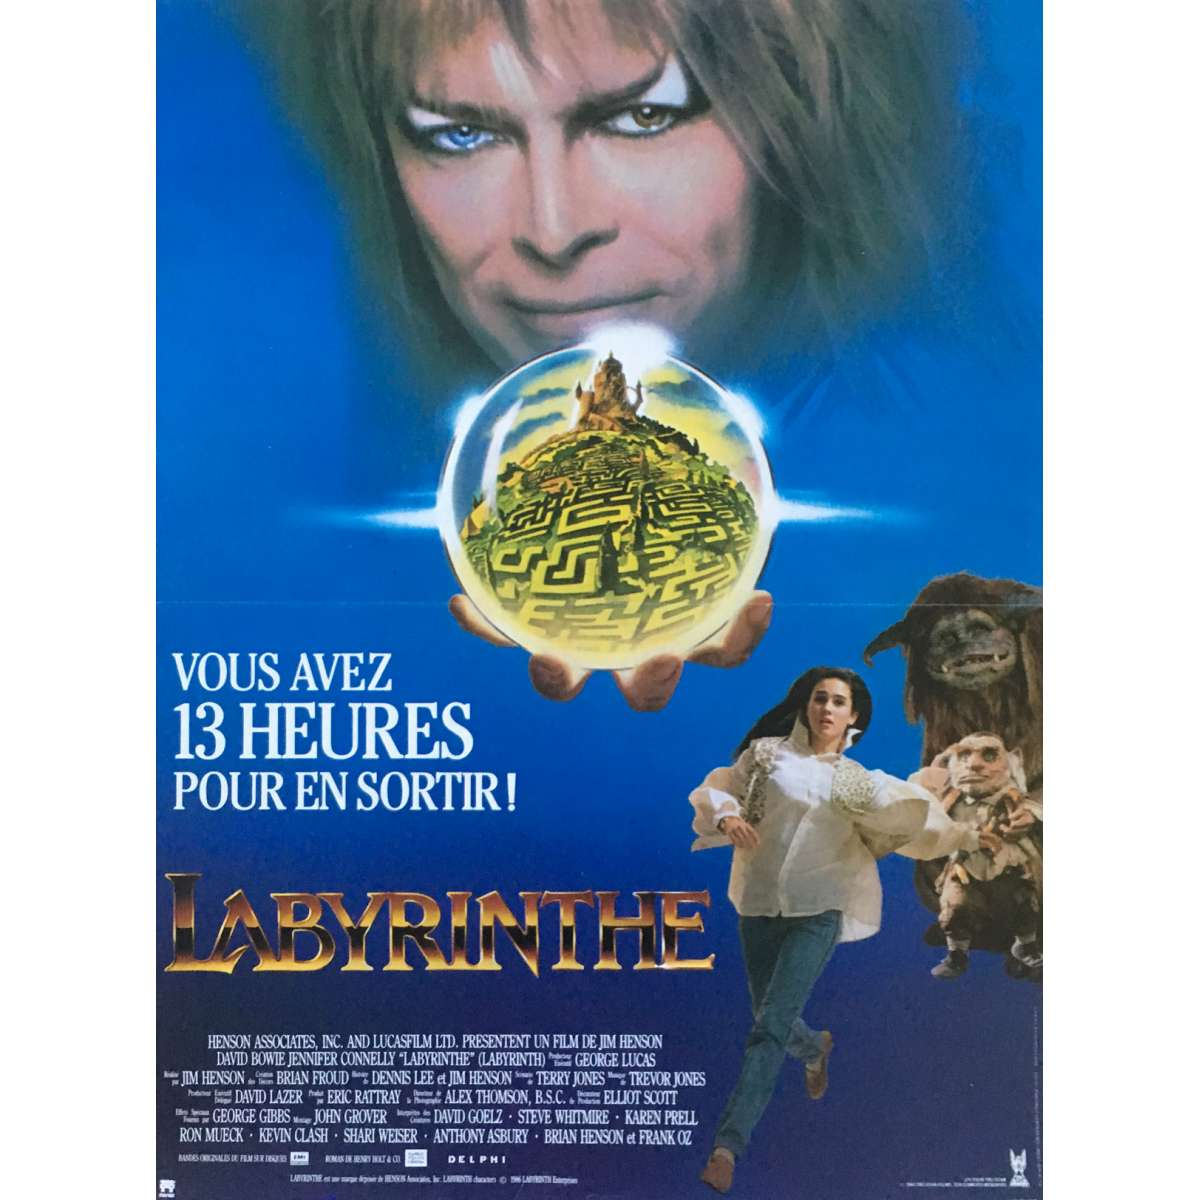 LABYRINTH Movie Poster 15x21 in. Labyrinth 1986 Poster